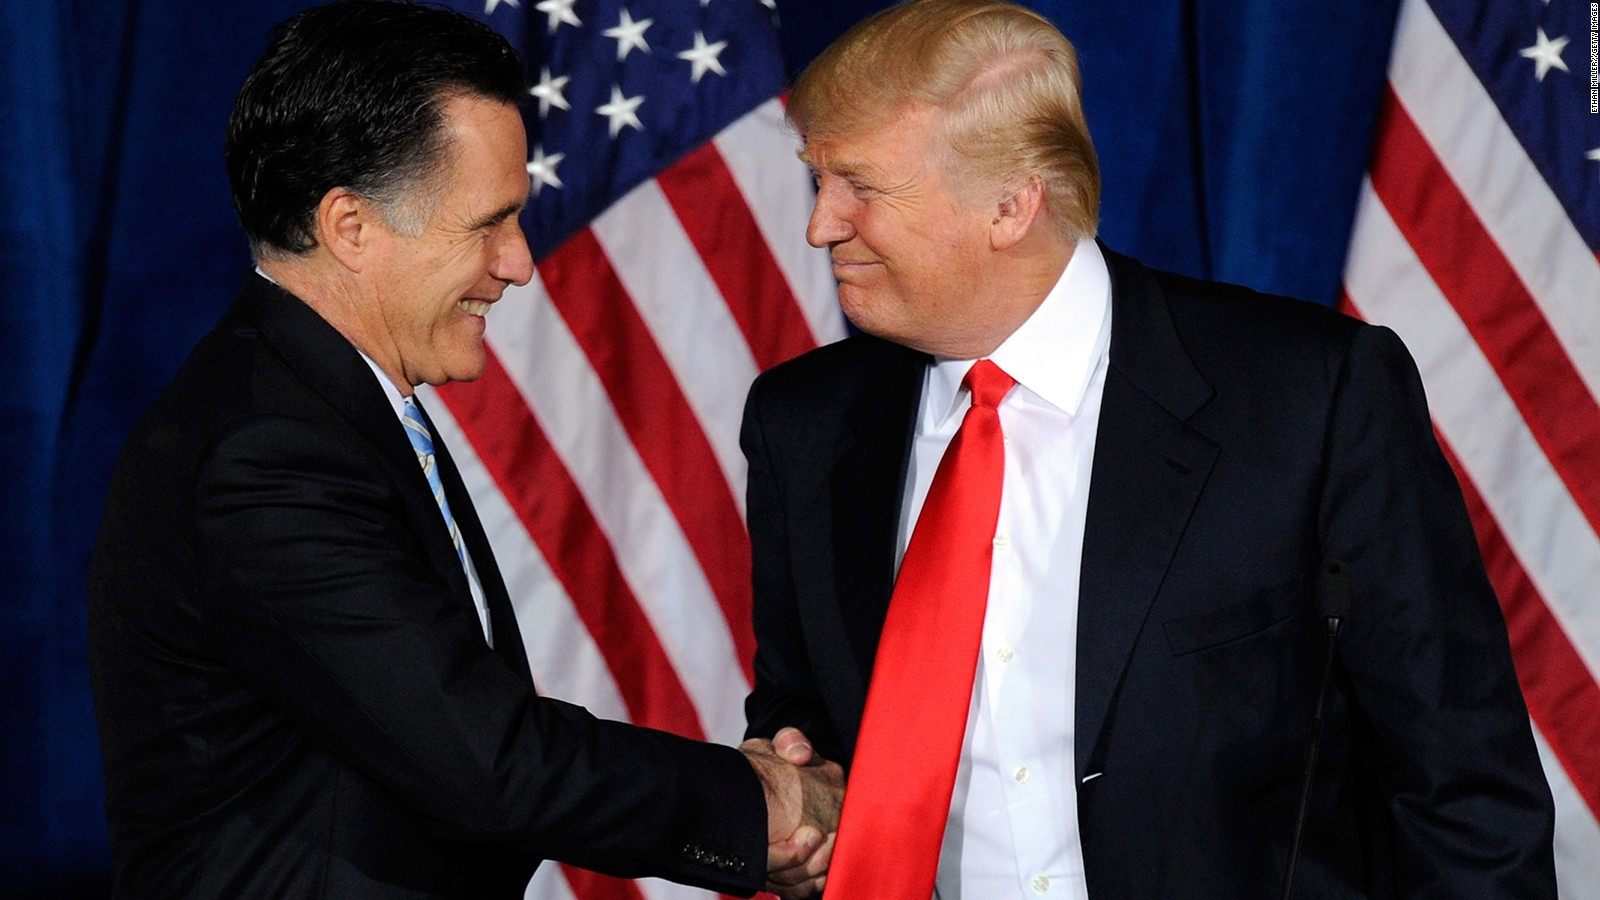 Image result for photos of mitt romney and mitch mcconnell in 2012